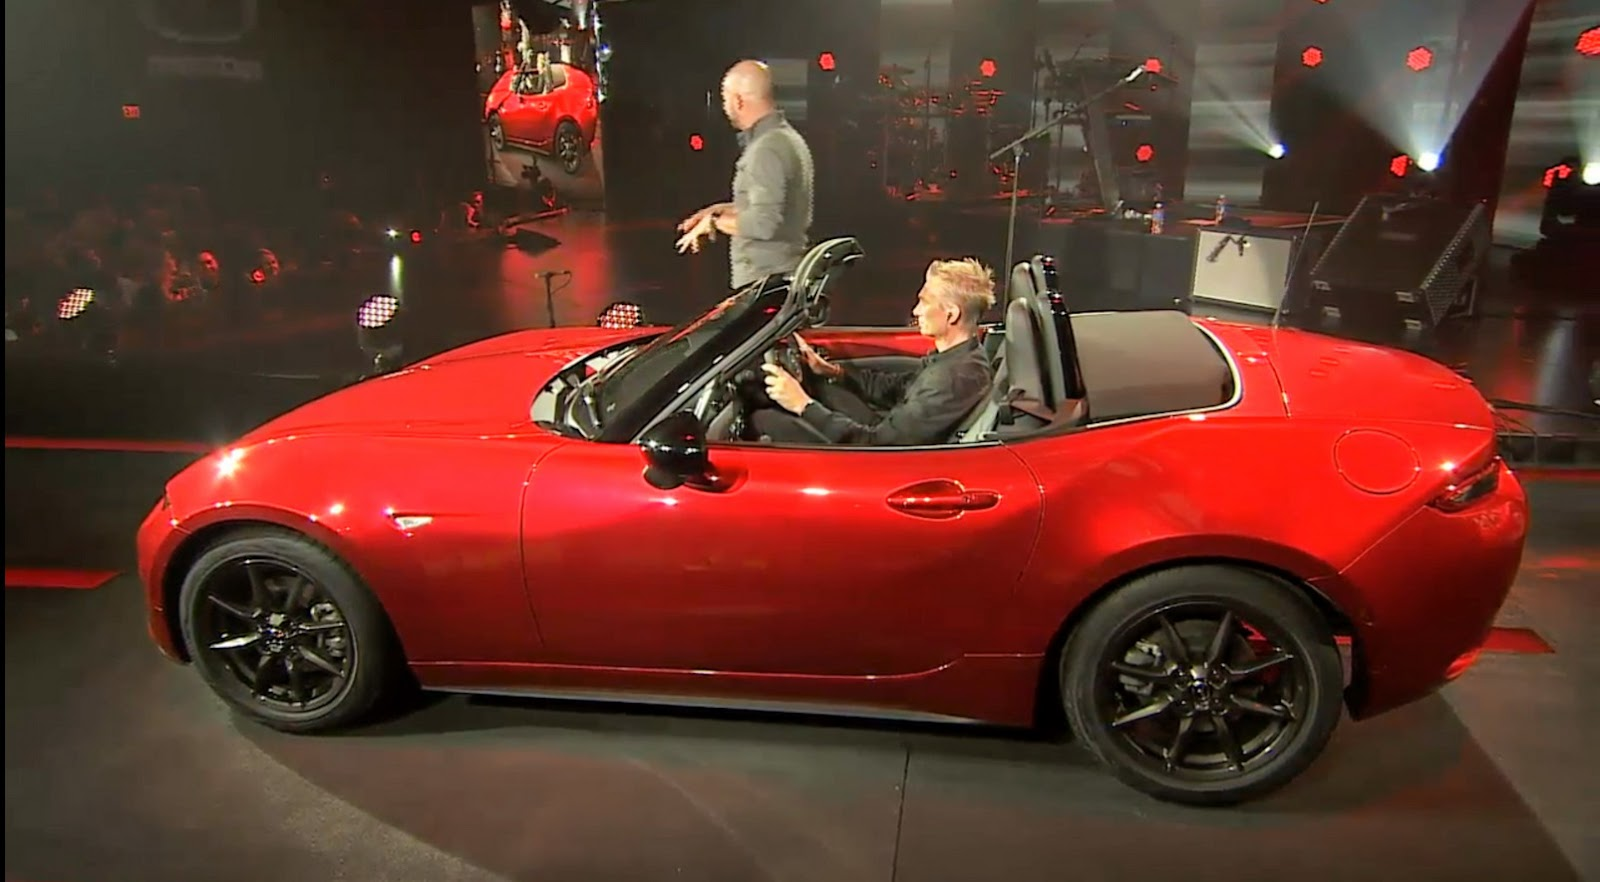 2015 mazda mx 5 officially announced turkeycarblog. Black Bedroom Furniture Sets. Home Design Ideas